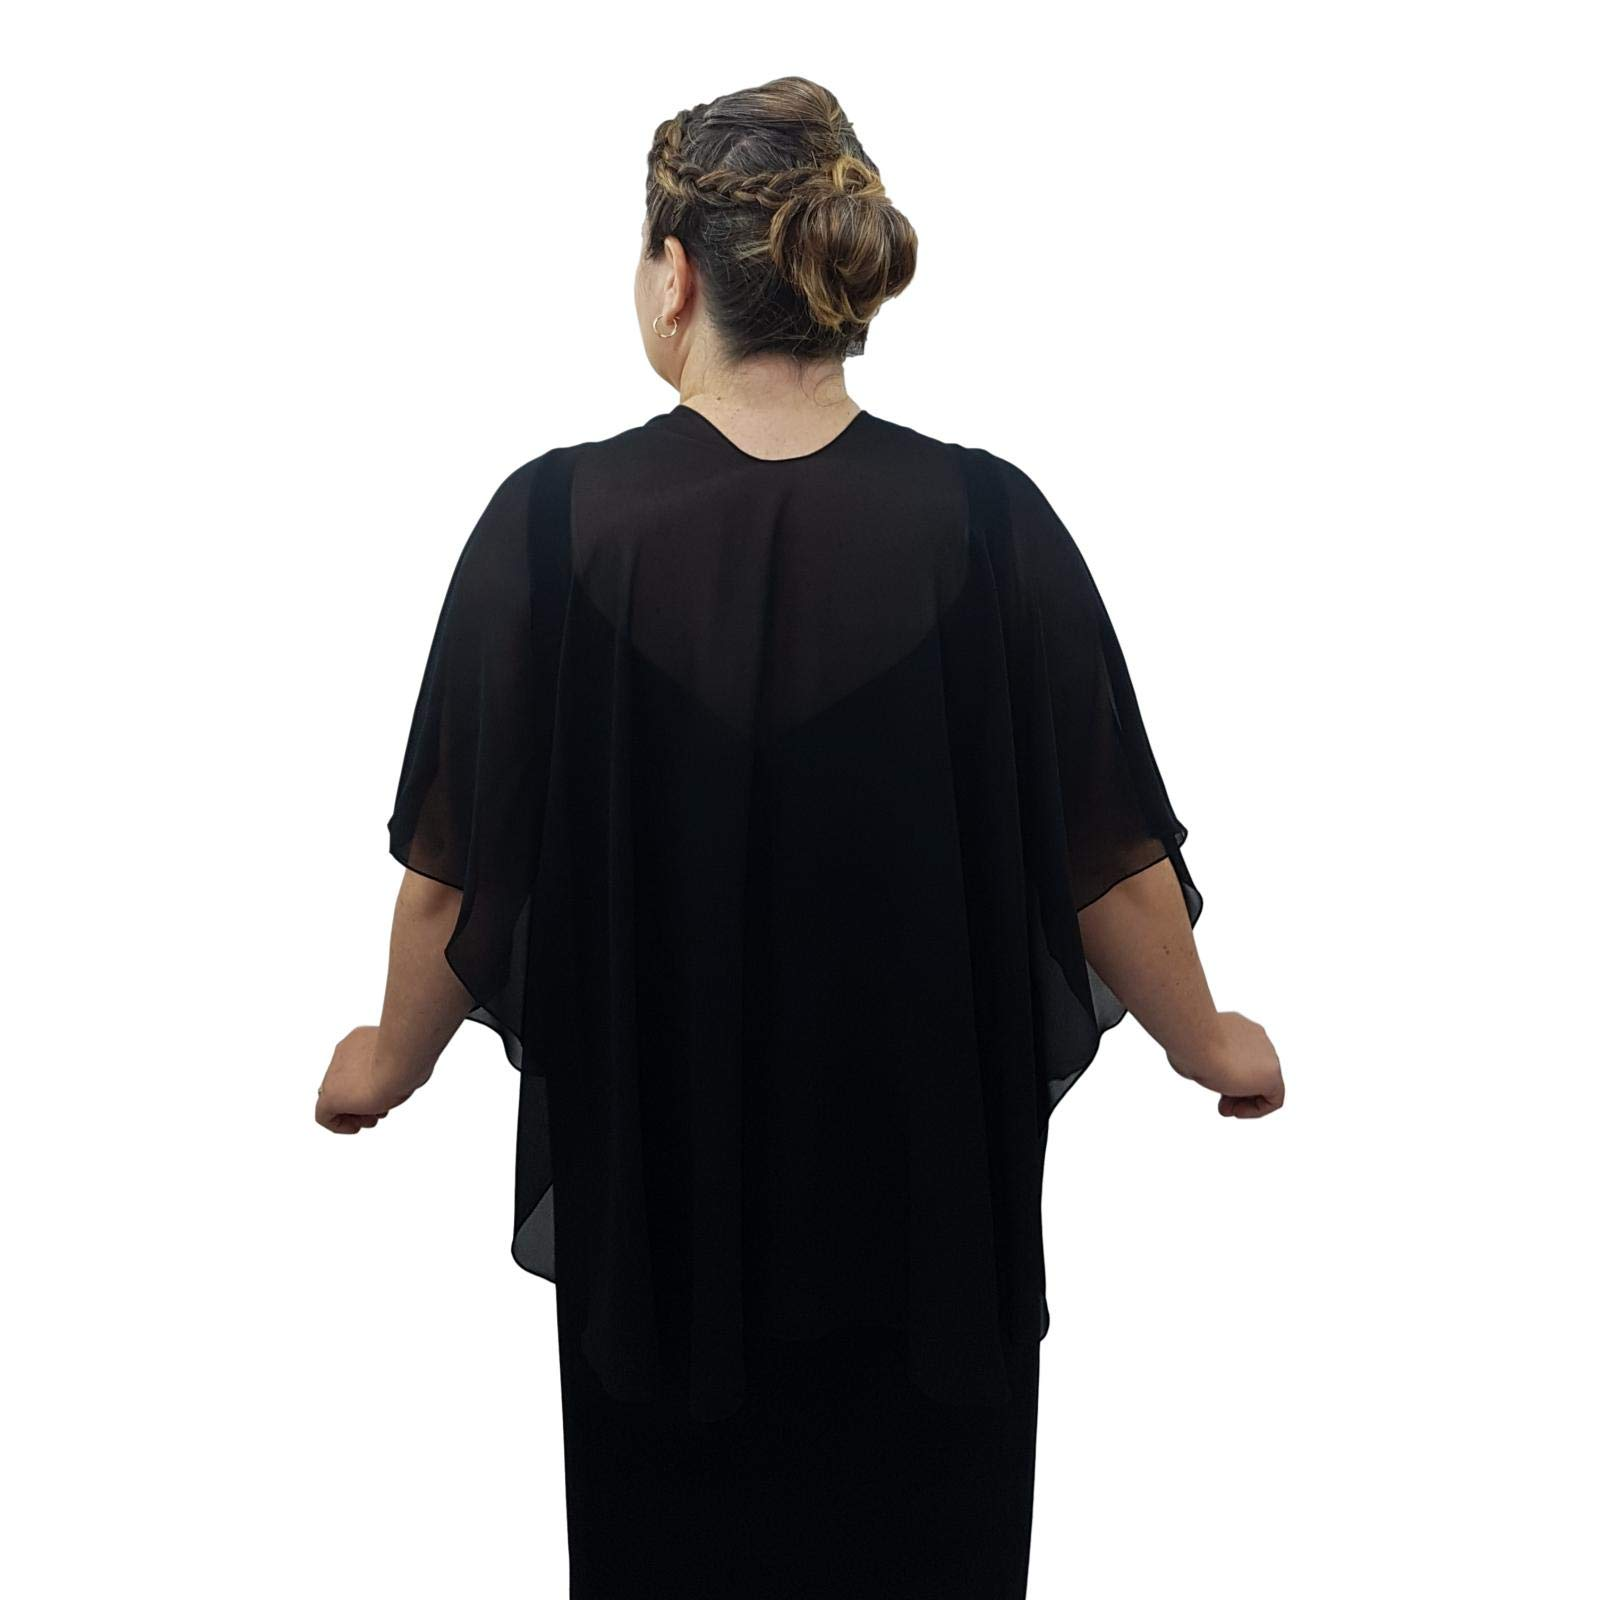 eXcaped Women's Evening Shawl Wrap Sheer Chiffon Open Front Cape and Silver Scarf Ring (Black) by eXcaped (Image #5)